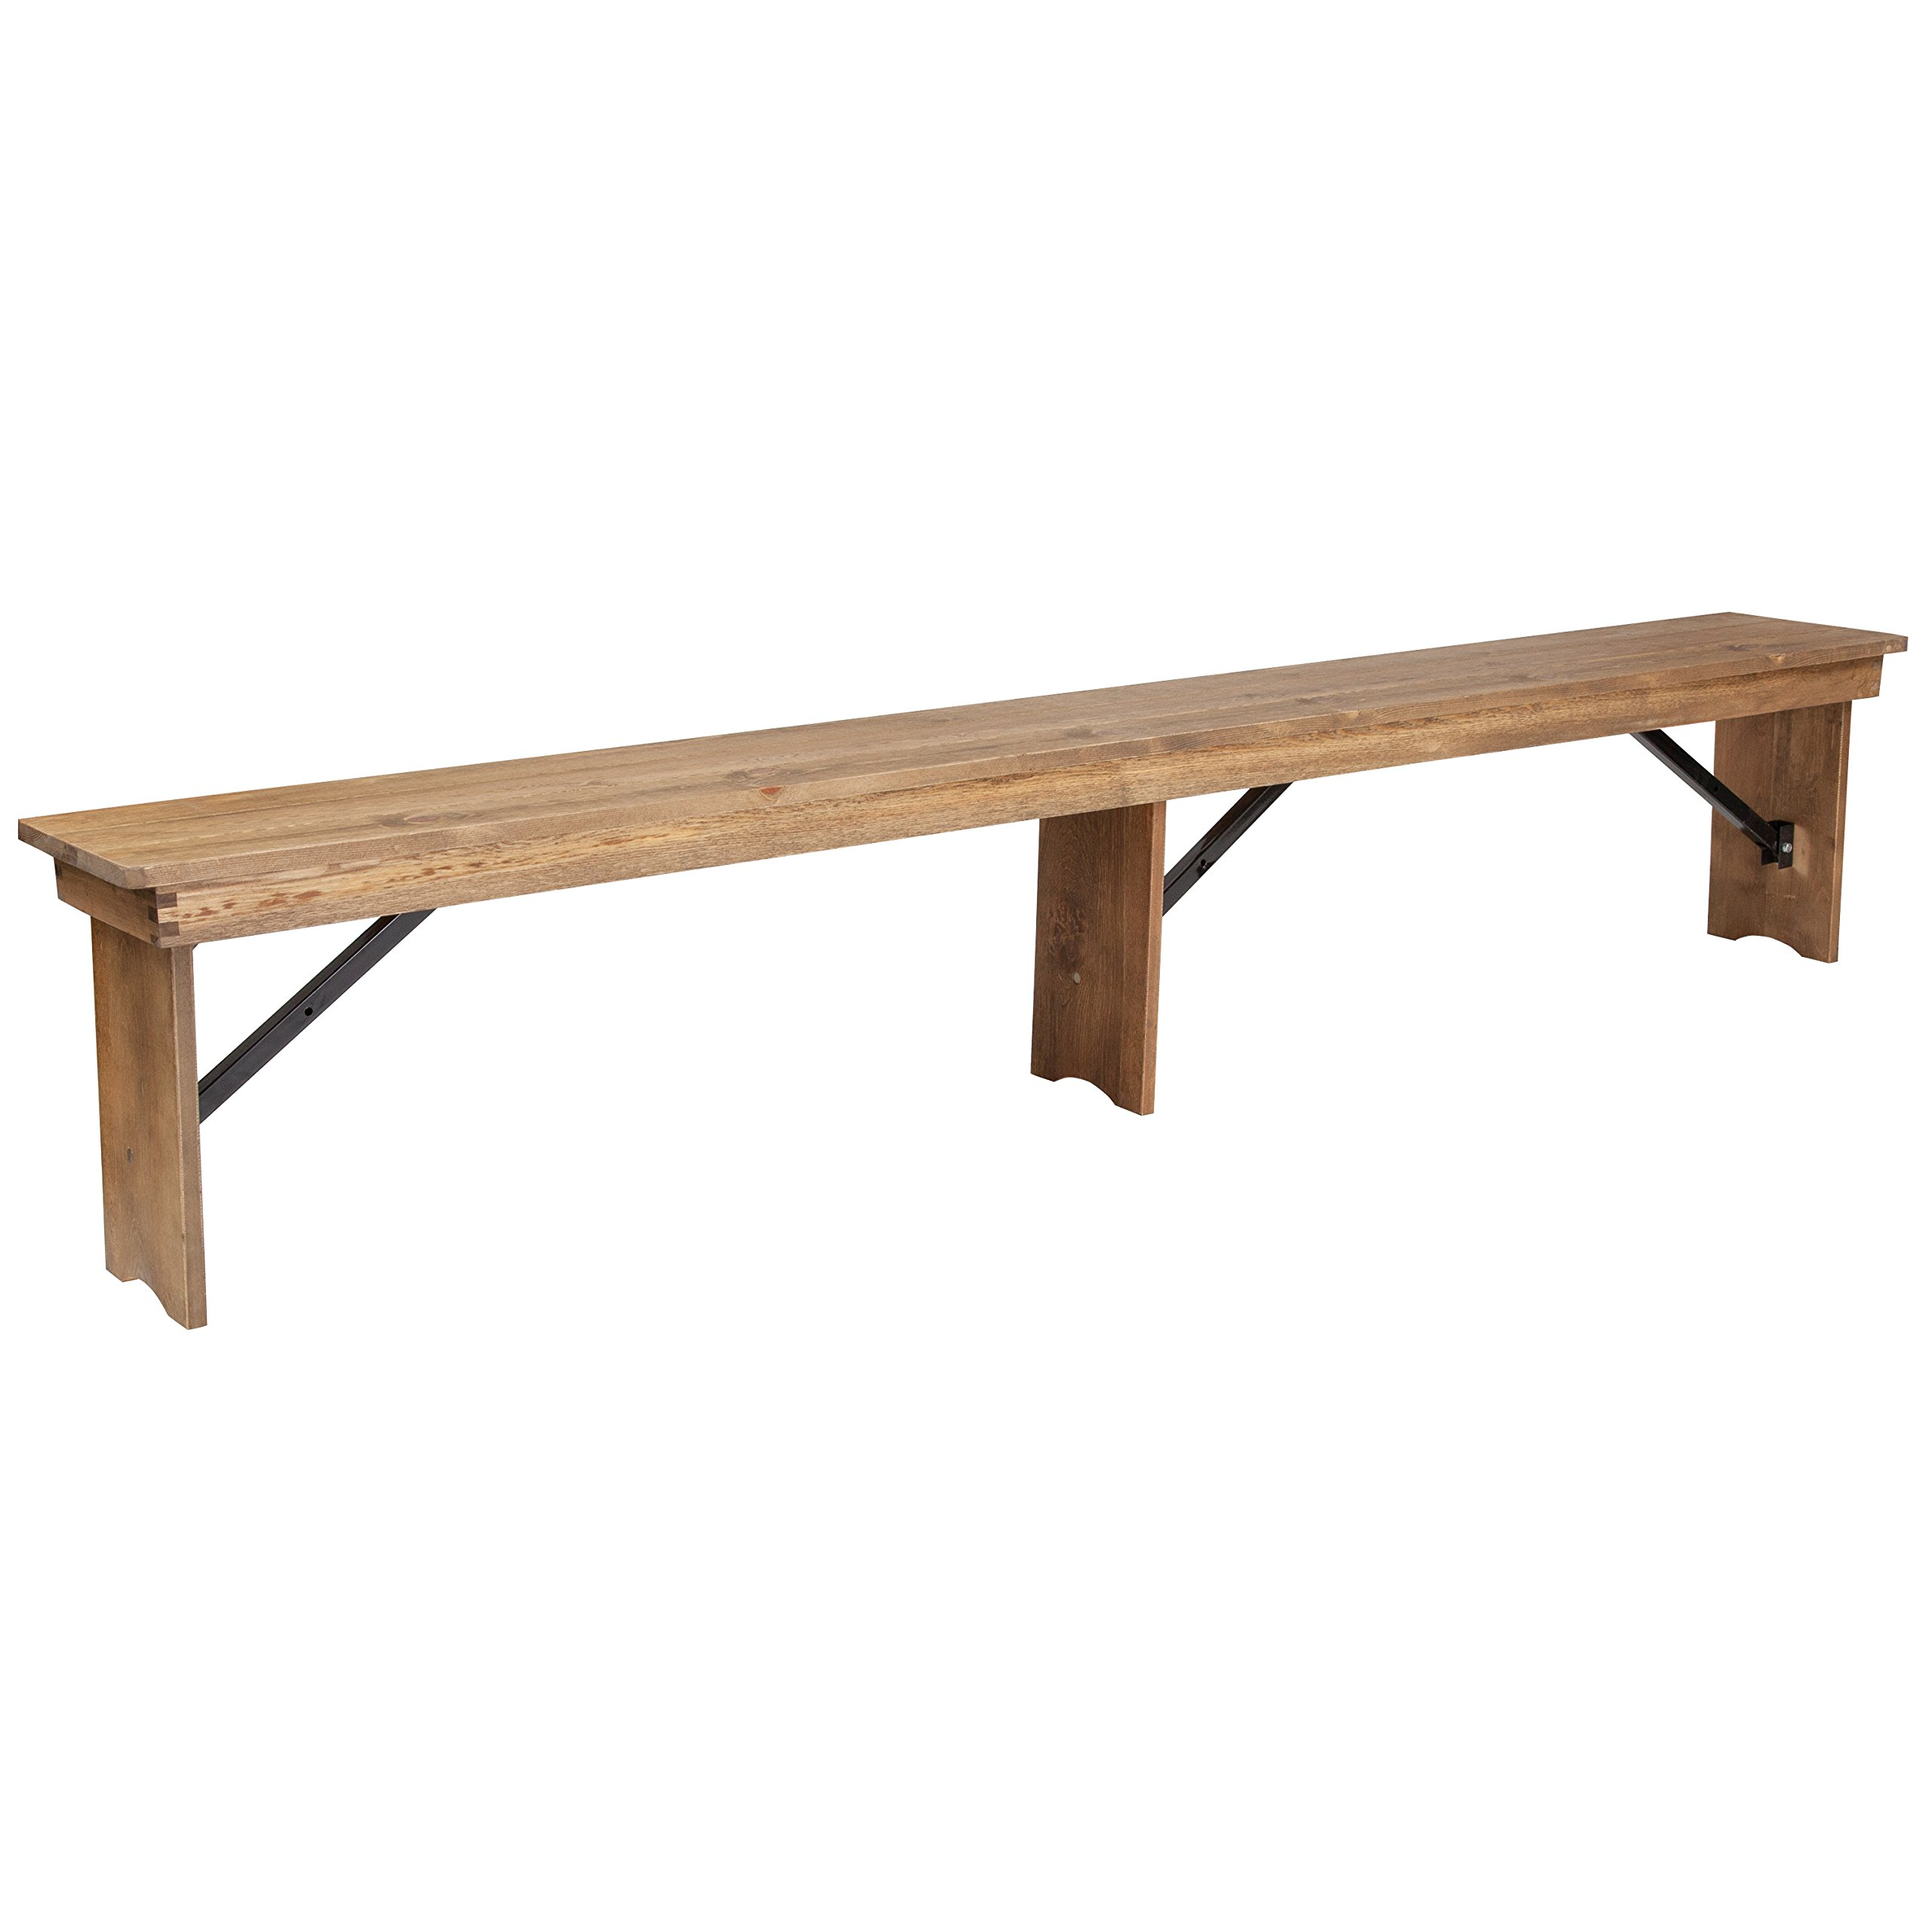 Flash Furniture HERCULES Series 8' x 12'' Antique Rustic Solid Pine Folding Farm Bench with 3 Legs - by Flash Furniture